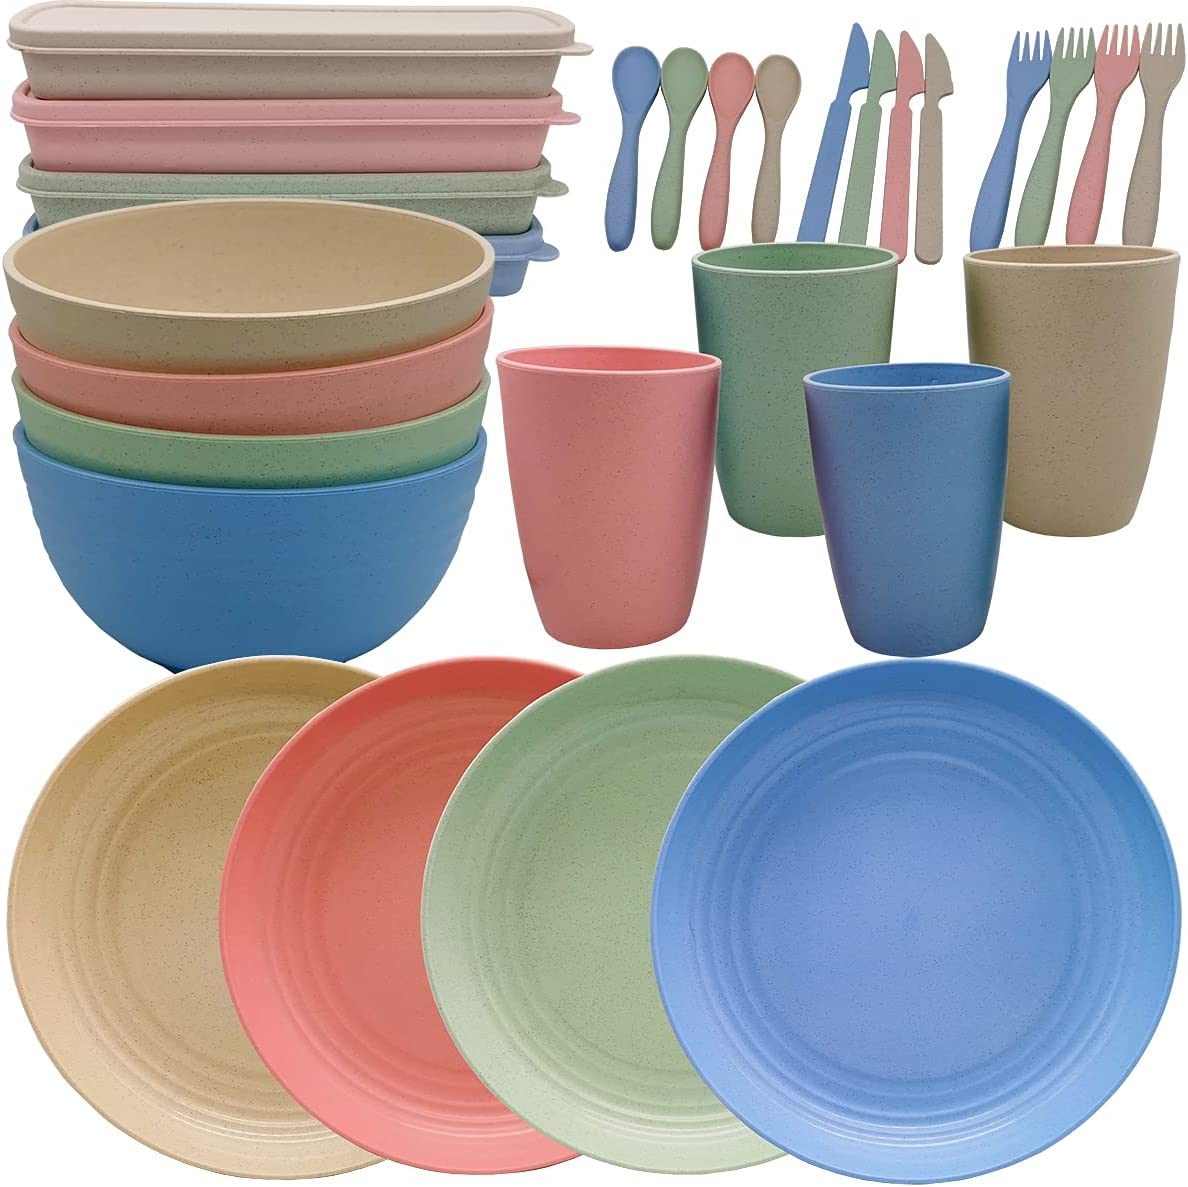 Acroyan Wheat Straw Dinnerware Sets- Unbreakable Pack Minneapolis Mall 28 Cheap mail order specialty store Dinnerw